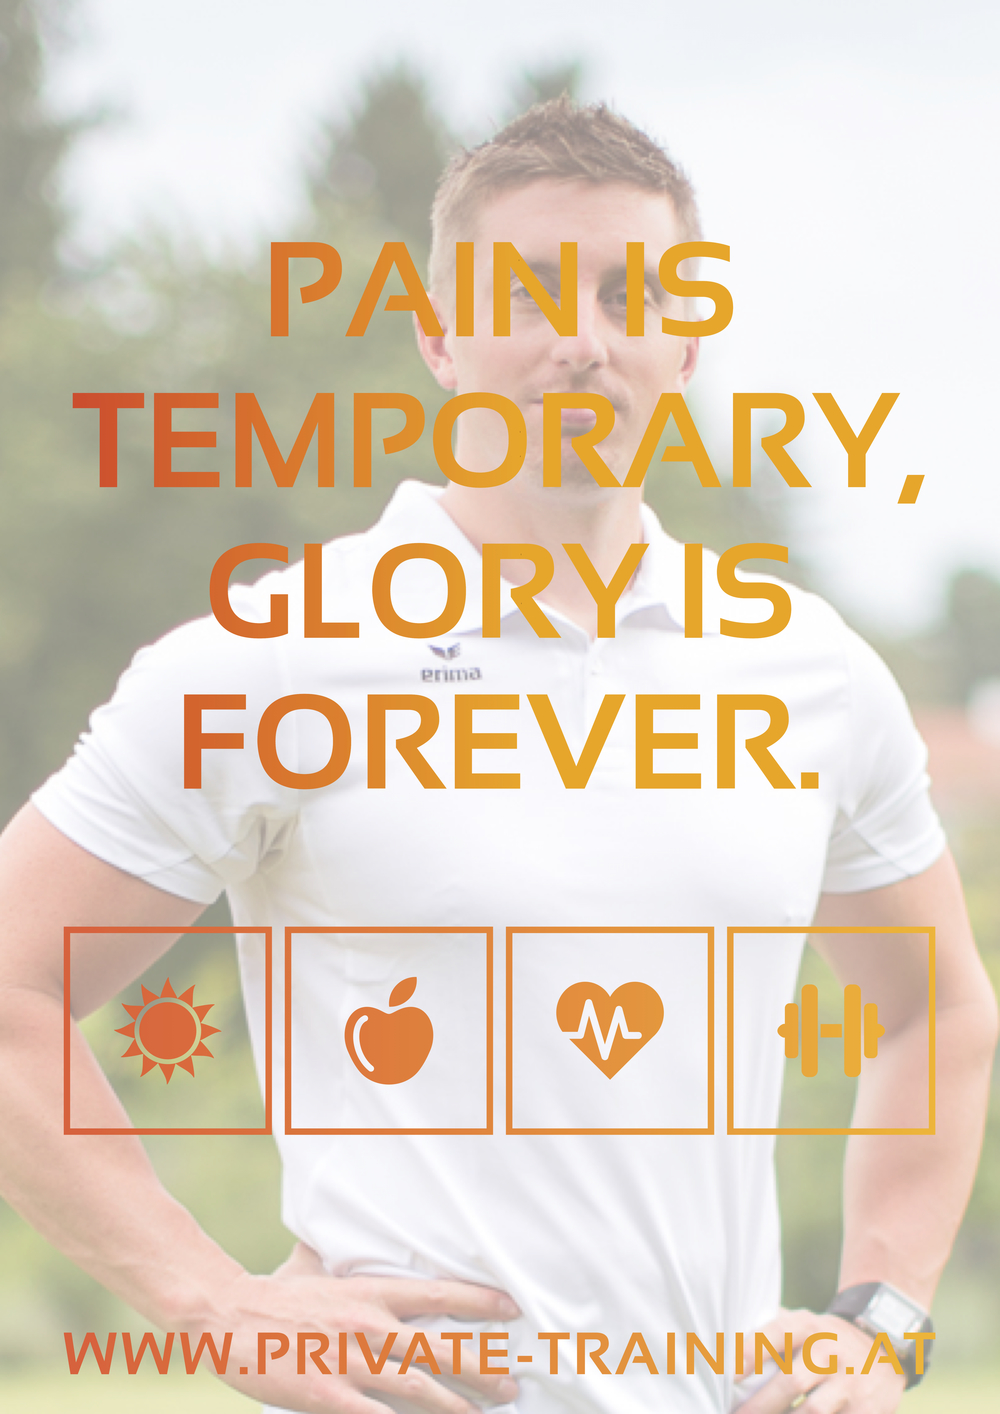 Pain_is_temporary_glory_is_forever